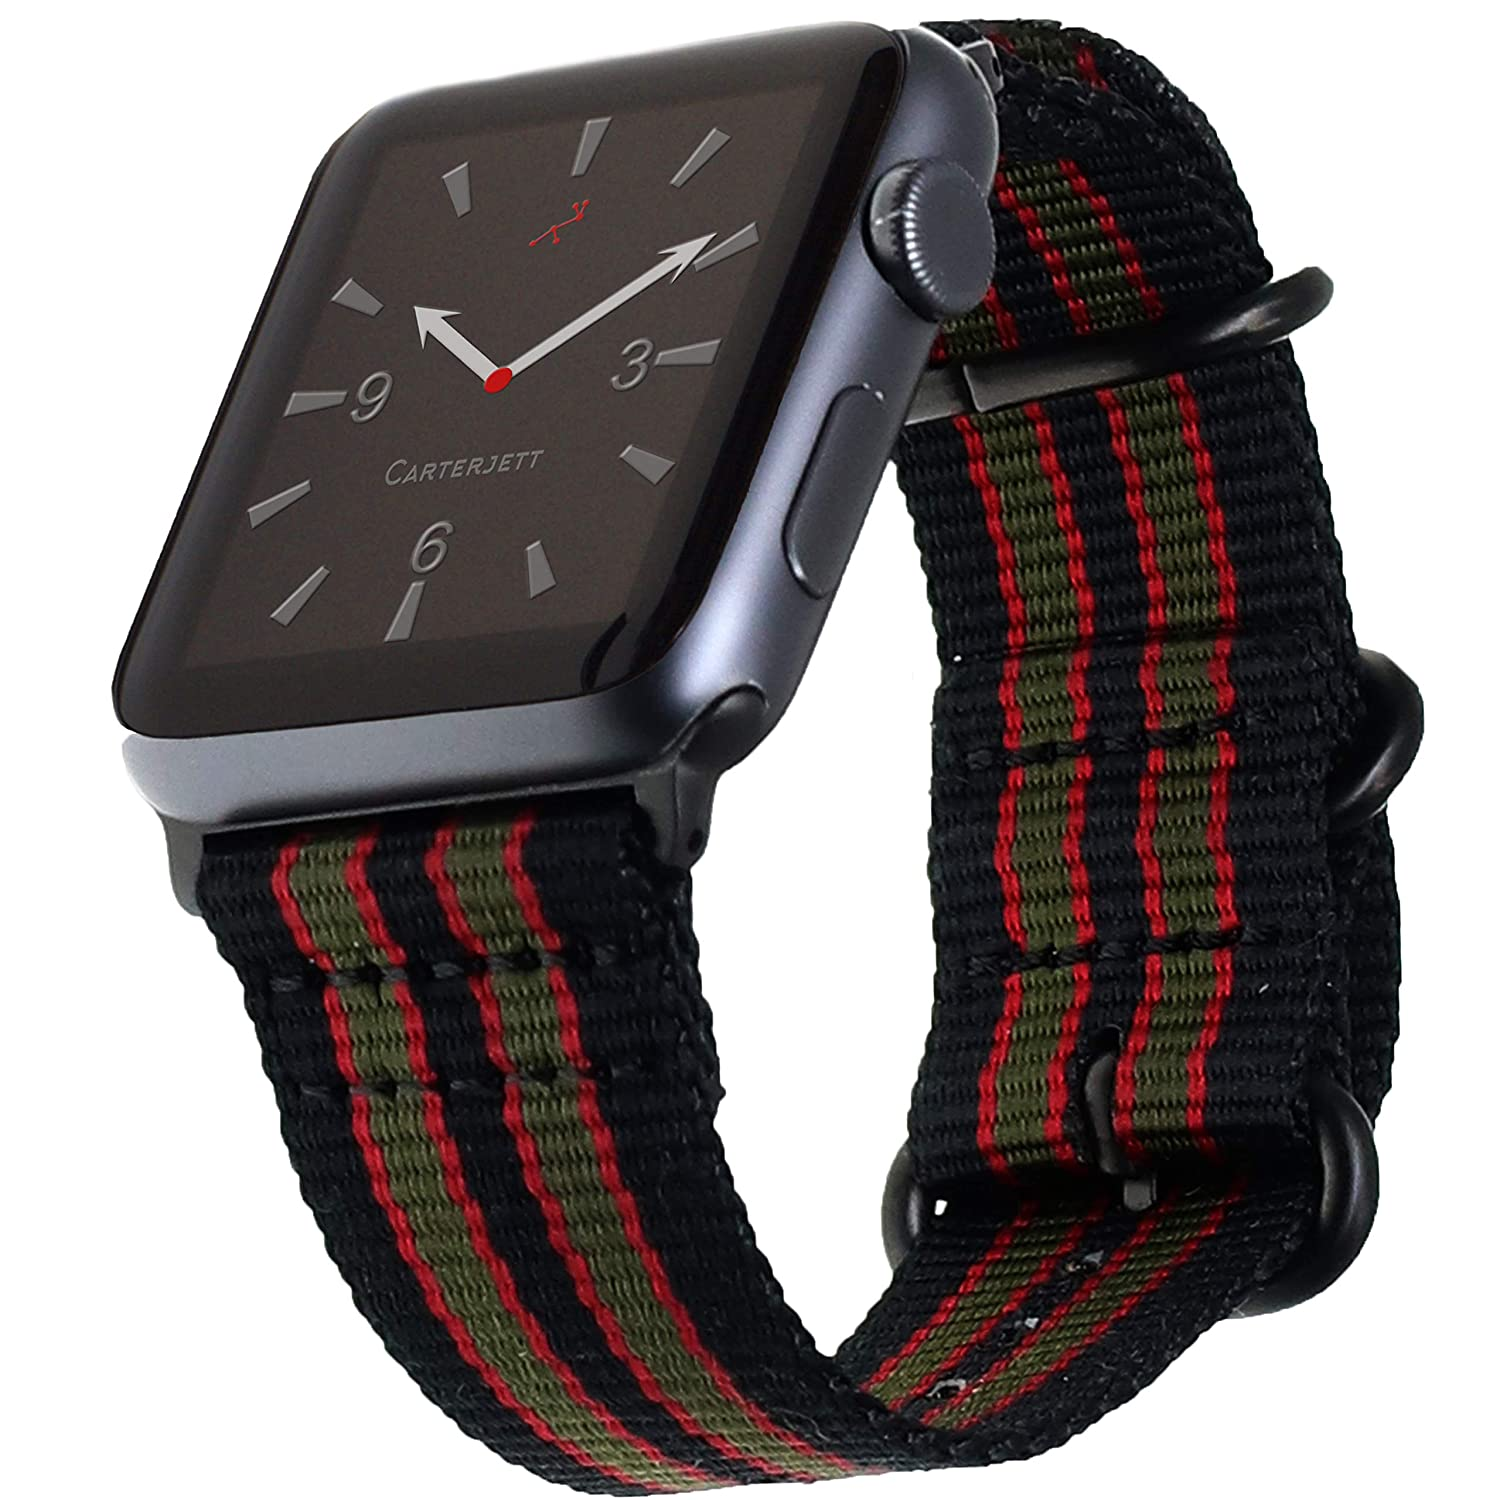 Carterjett Compatible with Apple Watch Band 42mm 44mm Men Women Nylon iWatch Bands Replacement Wrist Strap James Bond NATO Loop Buckle for Series 4 Series 3 2 1 Nike Sport (42 44 S/M/L Vintage Bond)